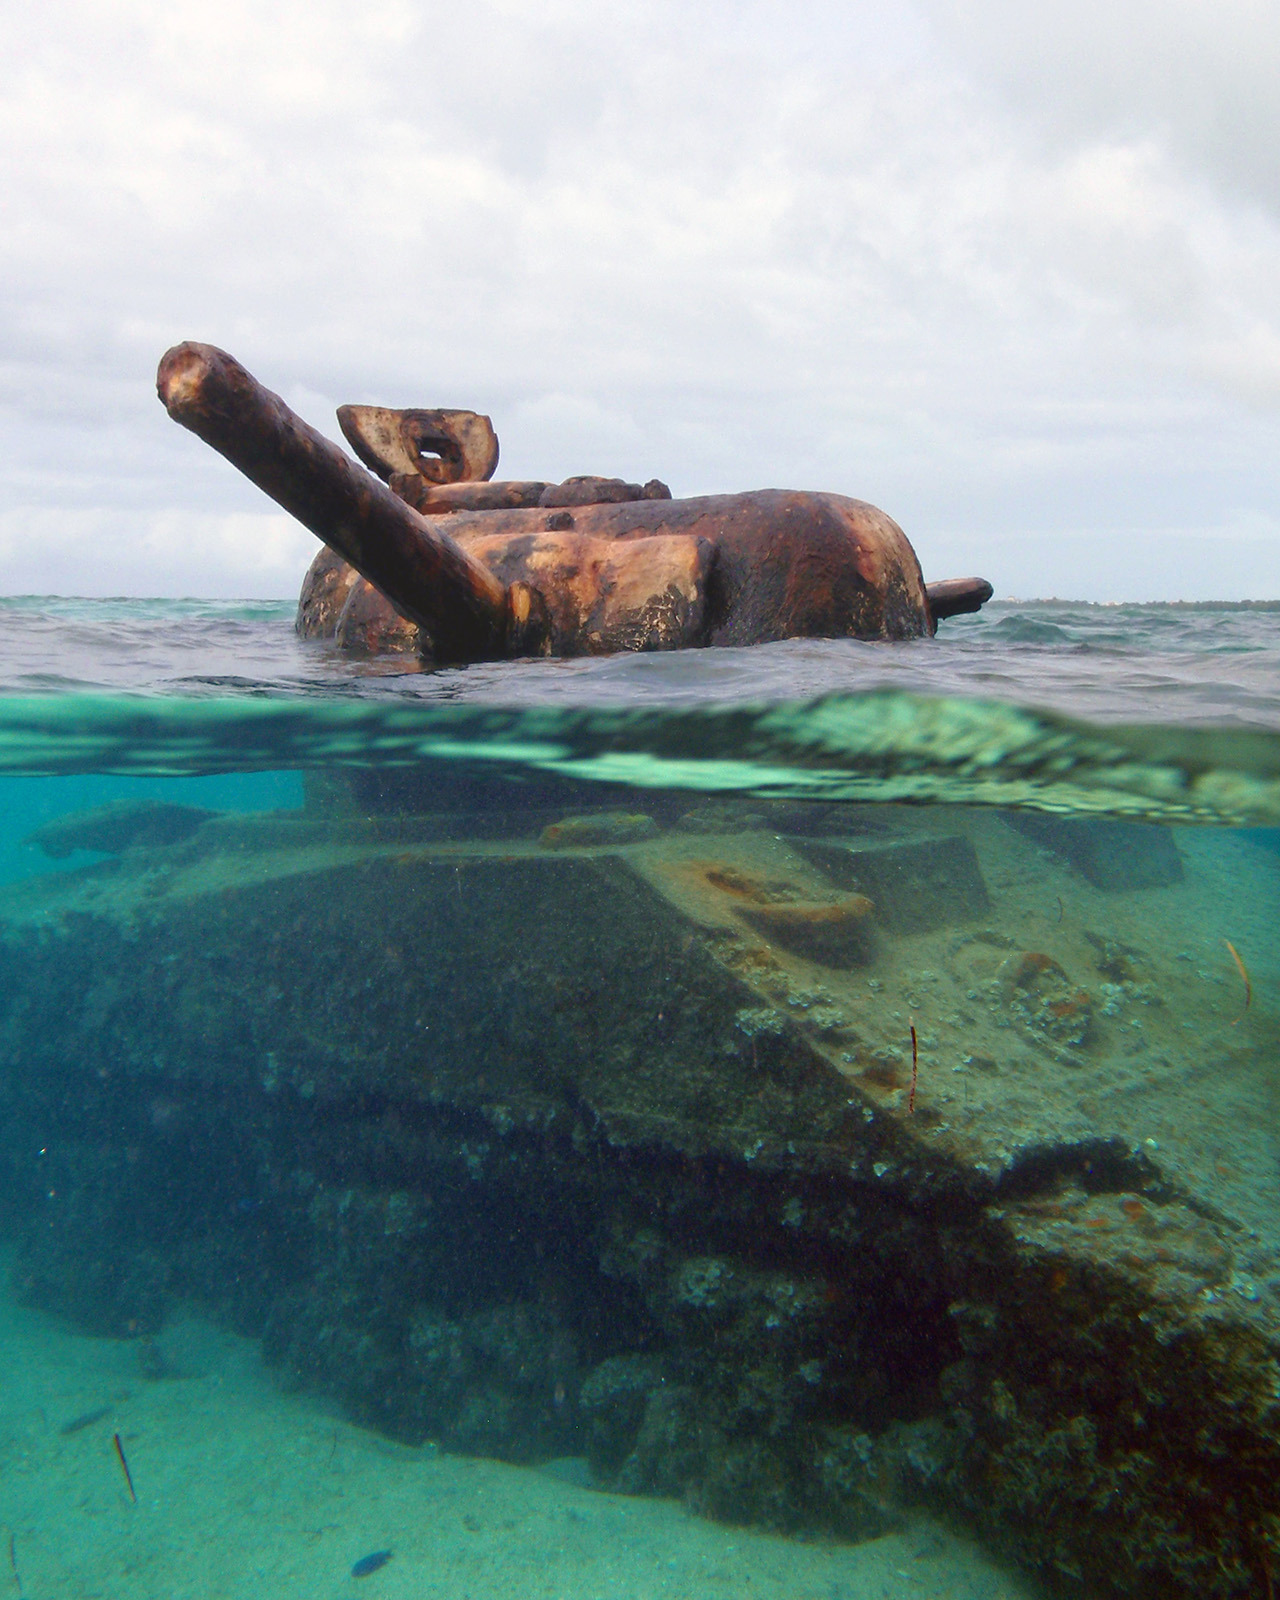 abandonedporn:  This US M4 Sherman Tank was stranded on the reef during the invasion of the island of Saipan during WWII. Its turret is still frozen in time, taking aim at a Japanese gun emplacement on the beach.